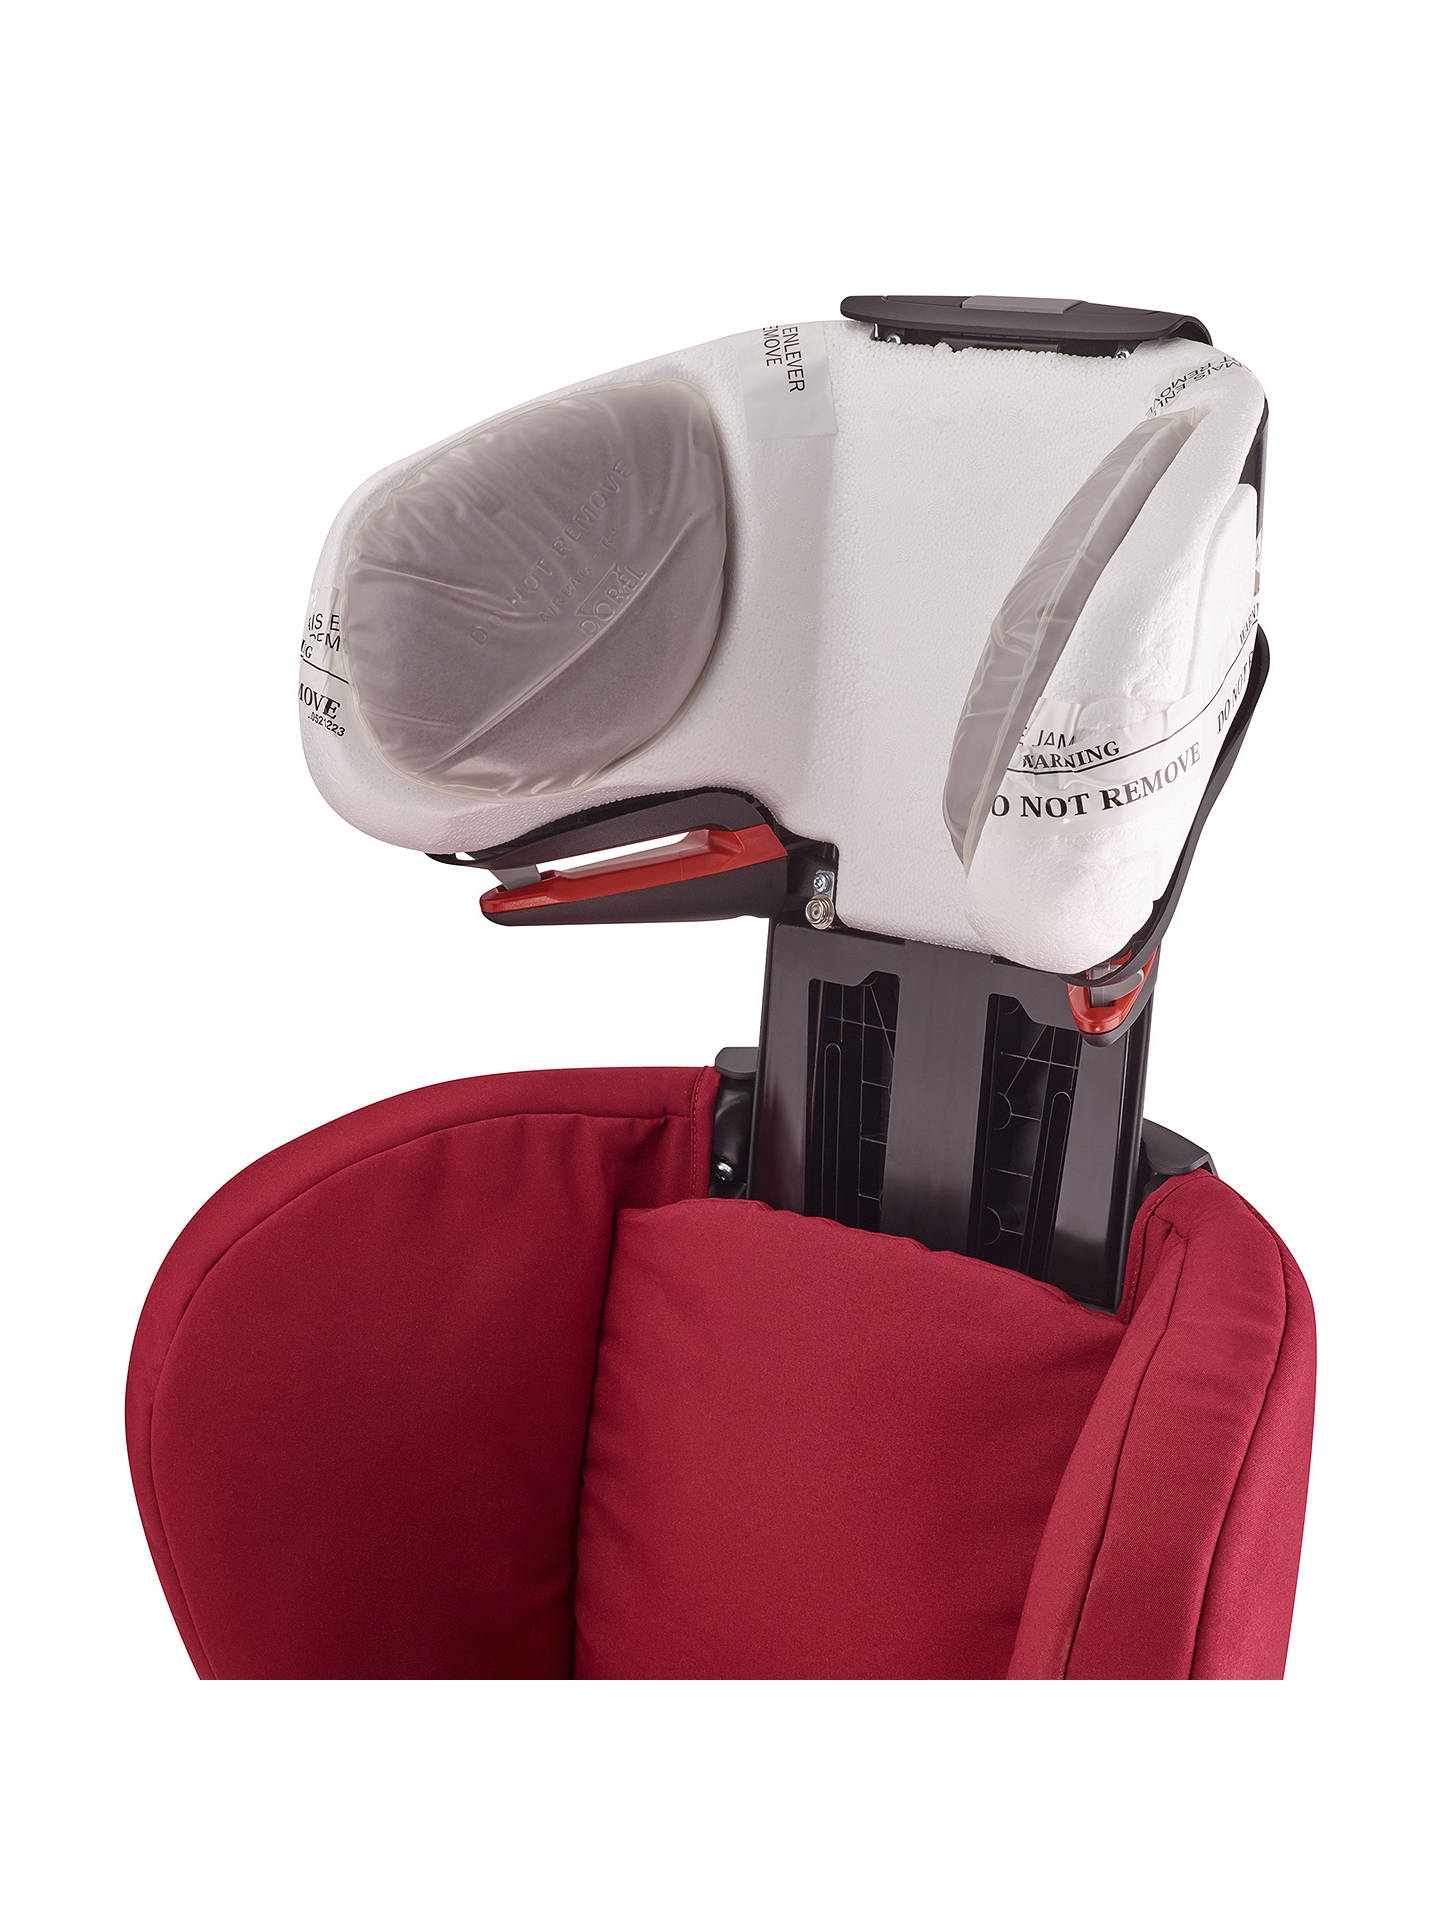 BuyMaxi-Cosi RodiFix AirProtect Group 2/3 Car Seat, Sparkling Grey Online at johnlewis.com